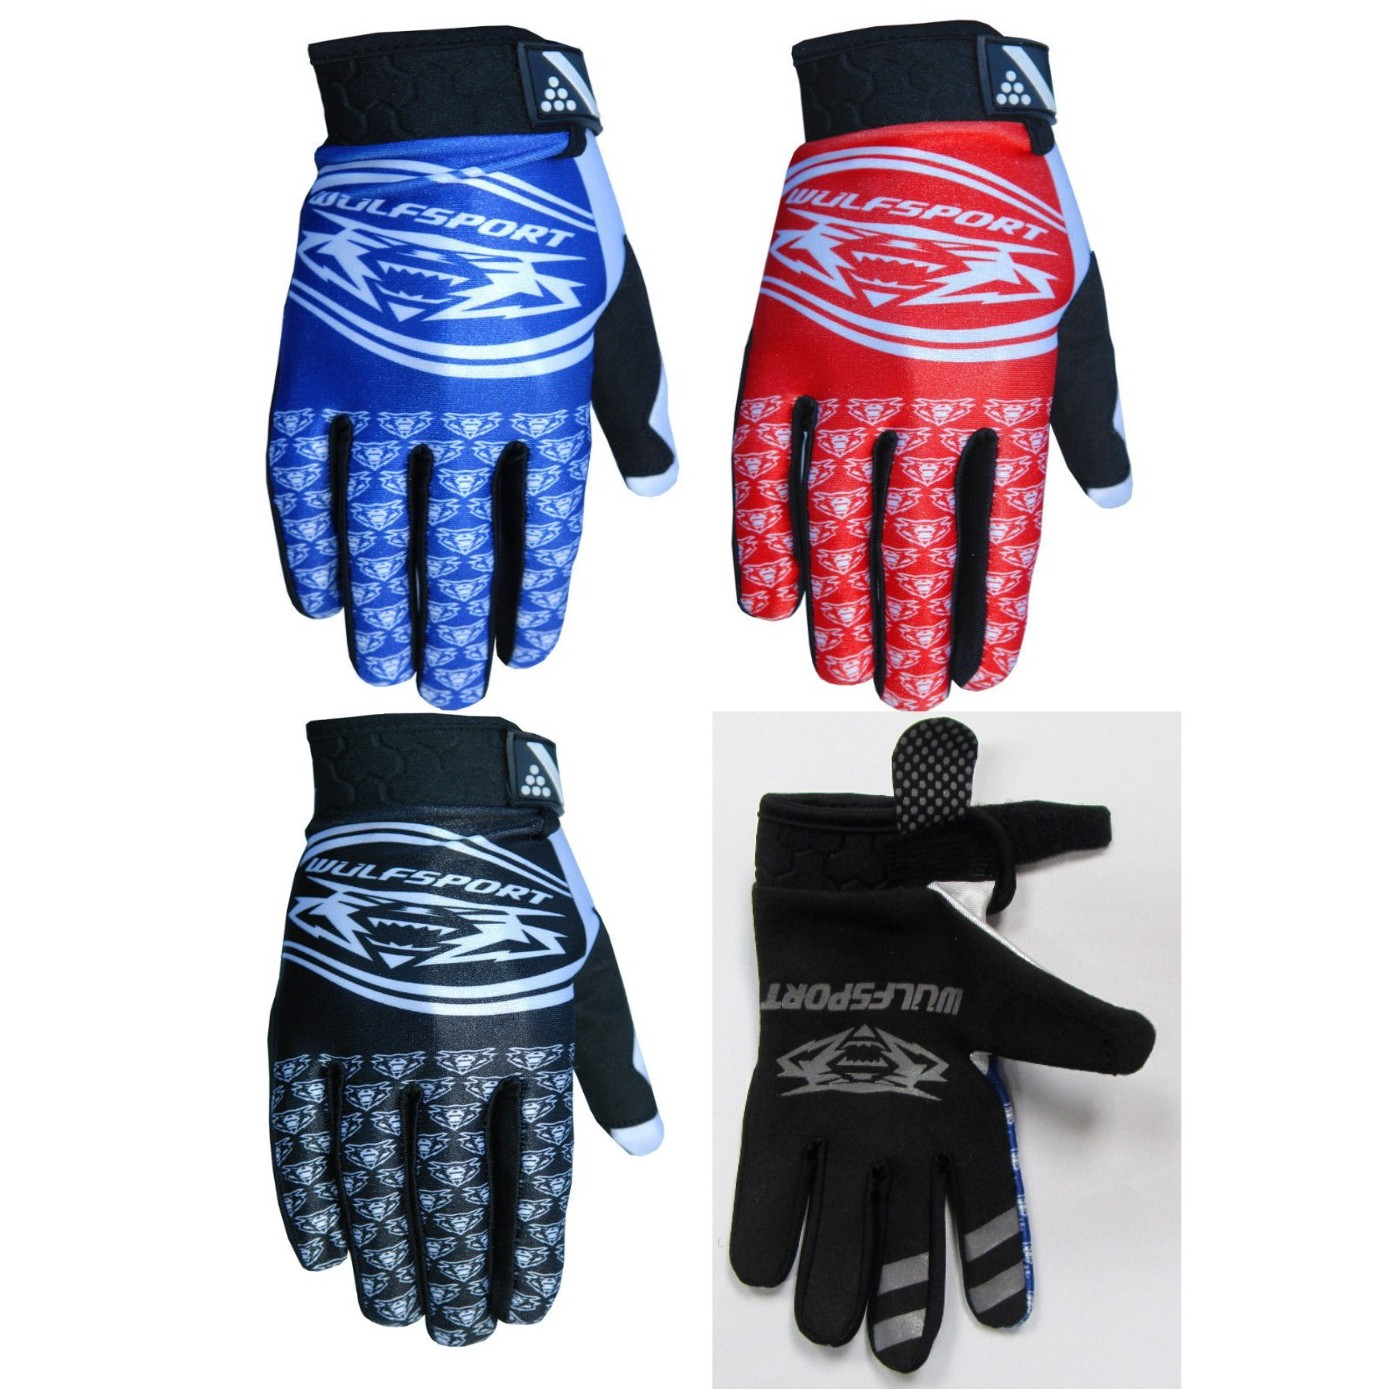 GANTS CROSS WULFSPORT COMP LIGHT enfant et adulte rouge bleu noi